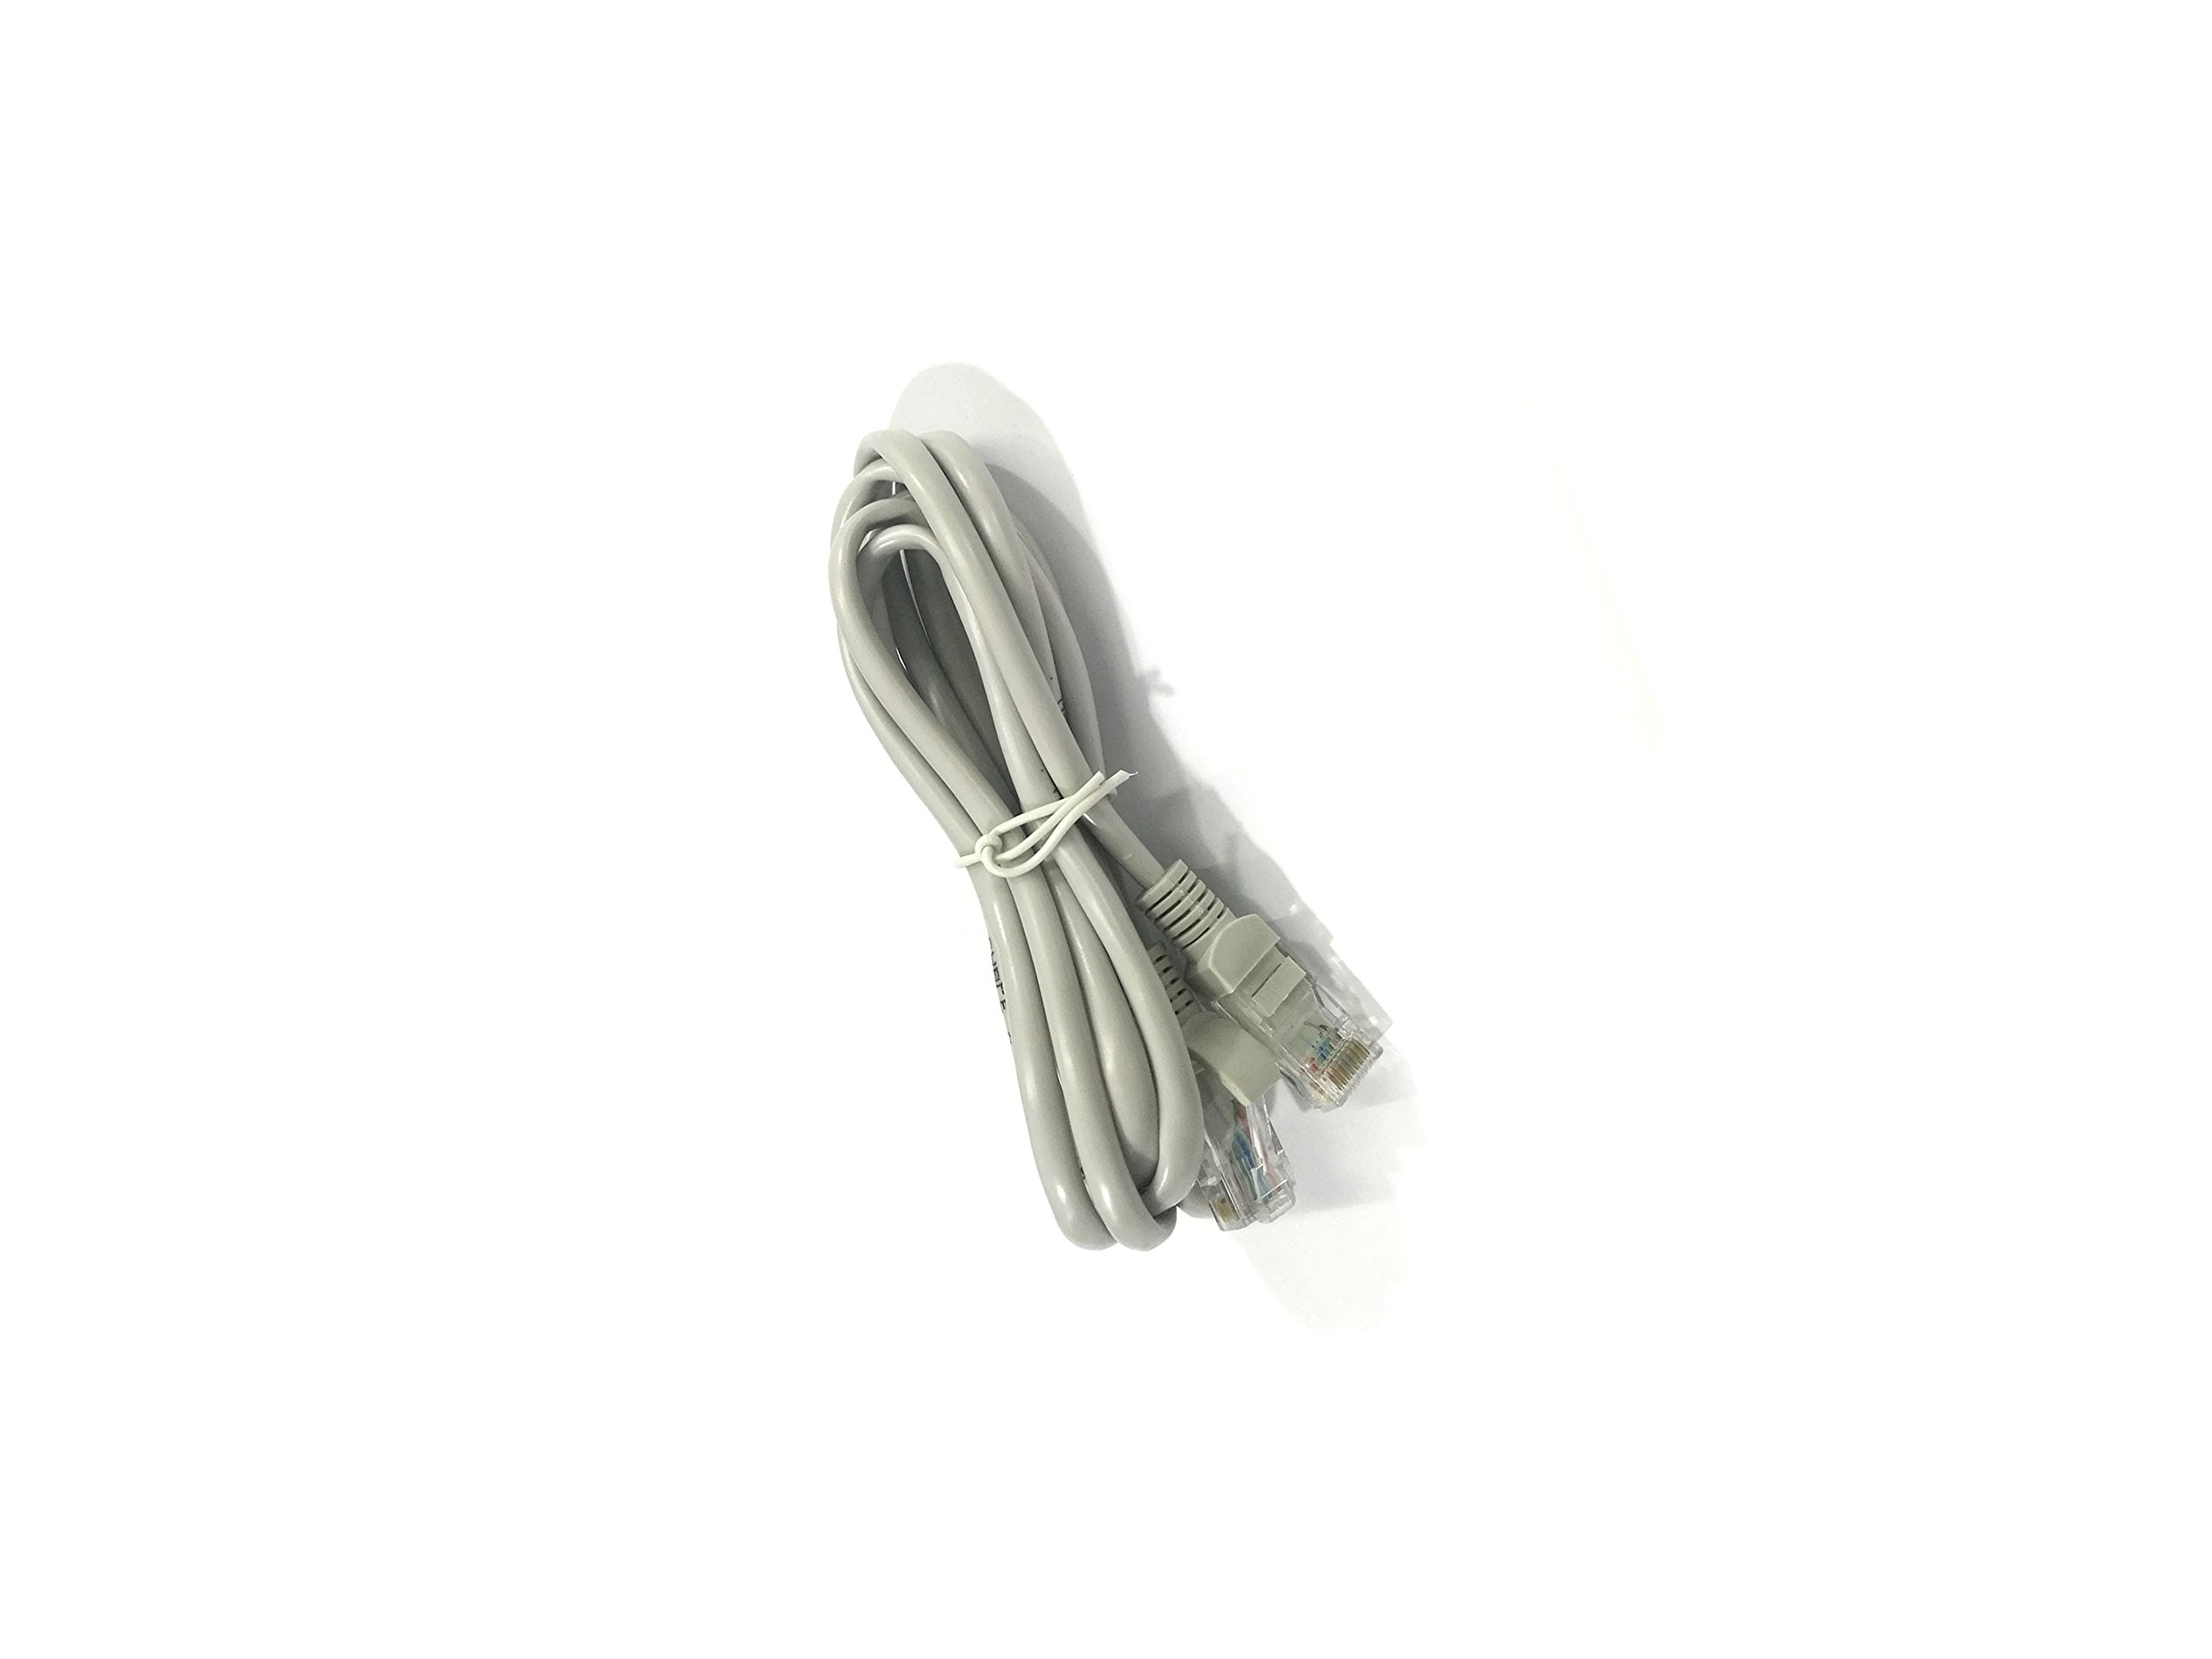 Network Cable for WiFi Repeater 750M